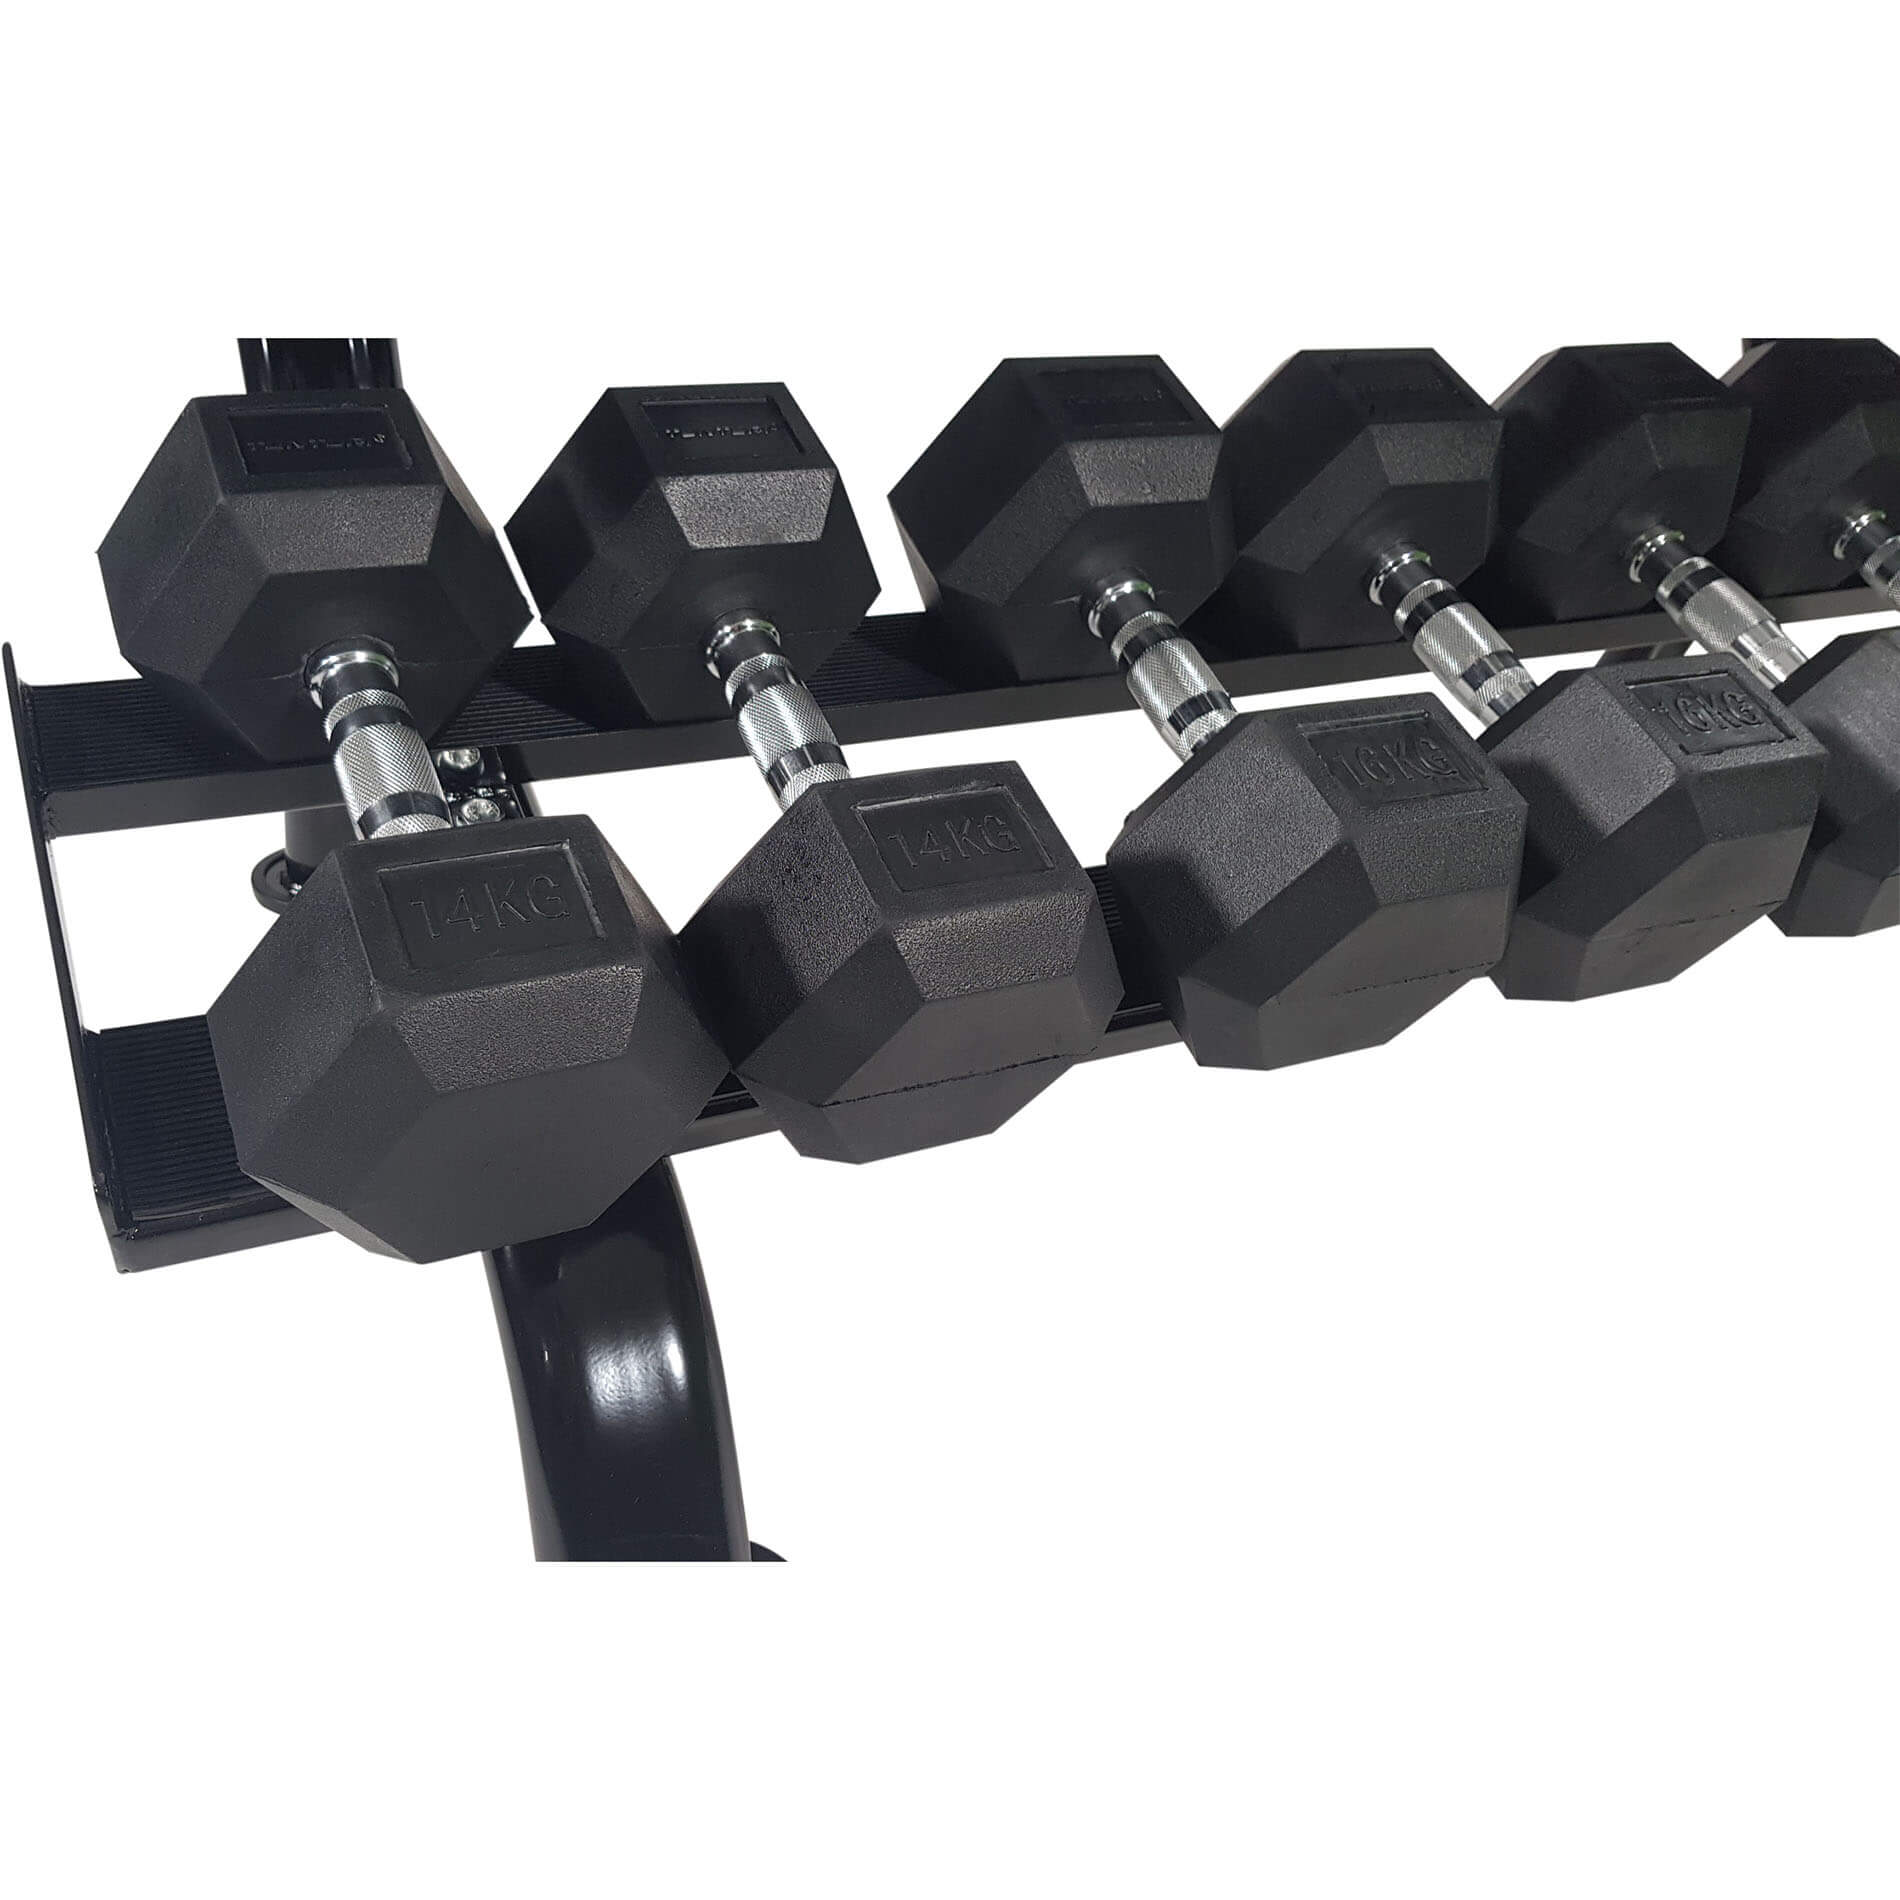 Dumbbell Rack Prof 3 Levels